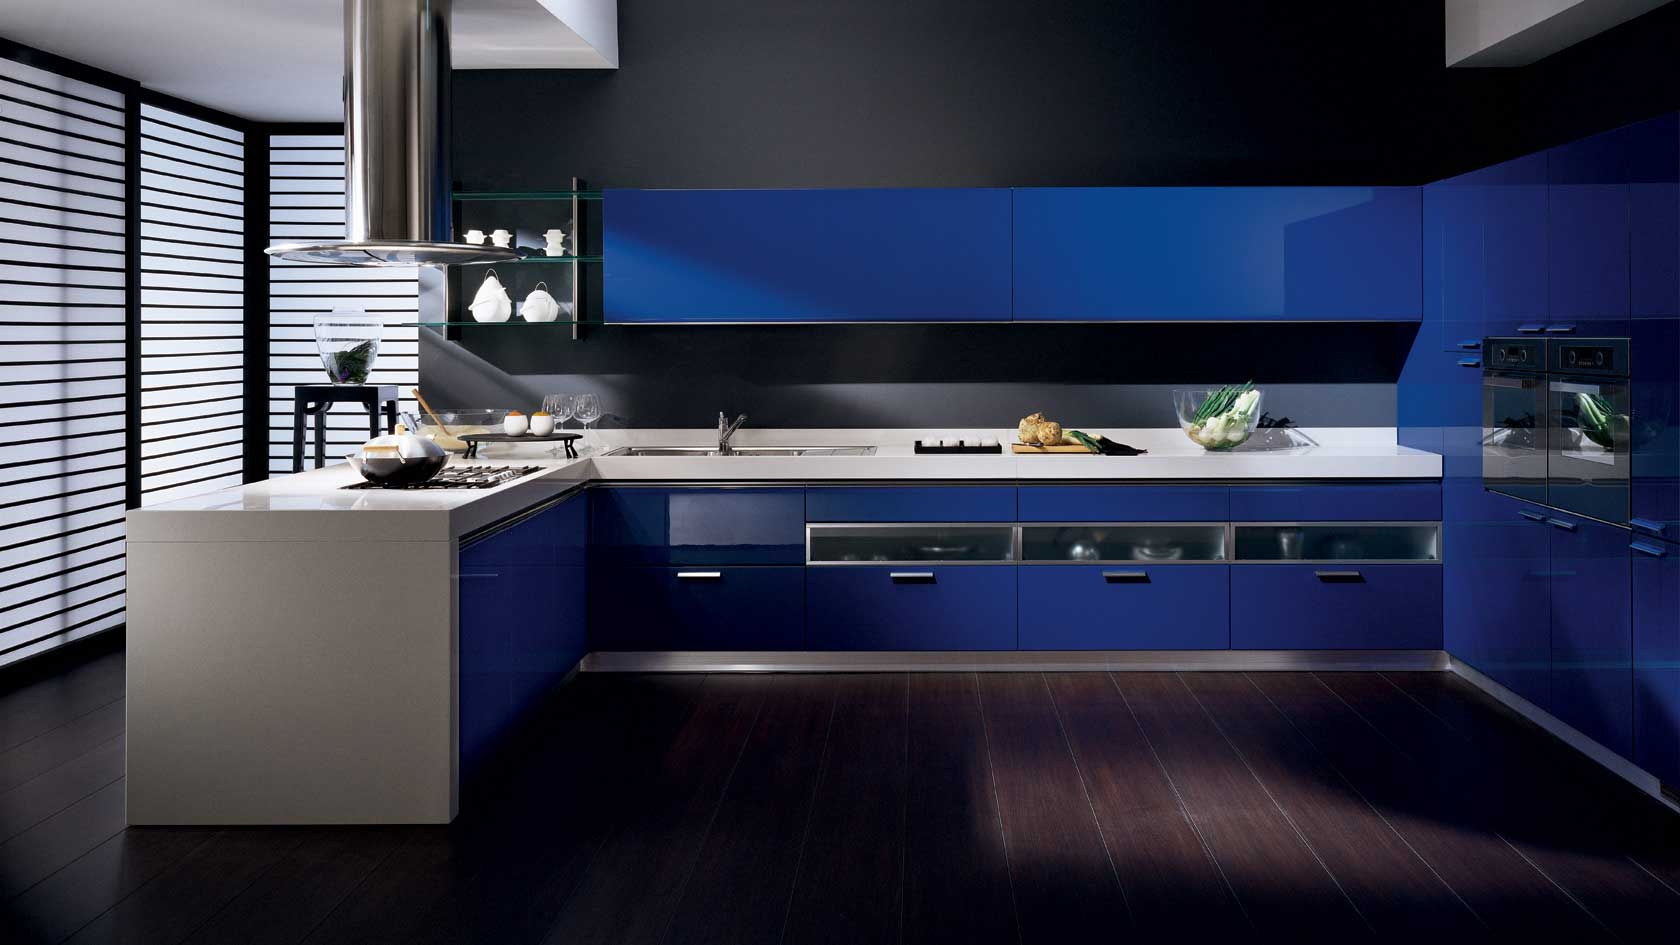 Kitchen design in blue, contrasting with dark wall and flooring in dark color